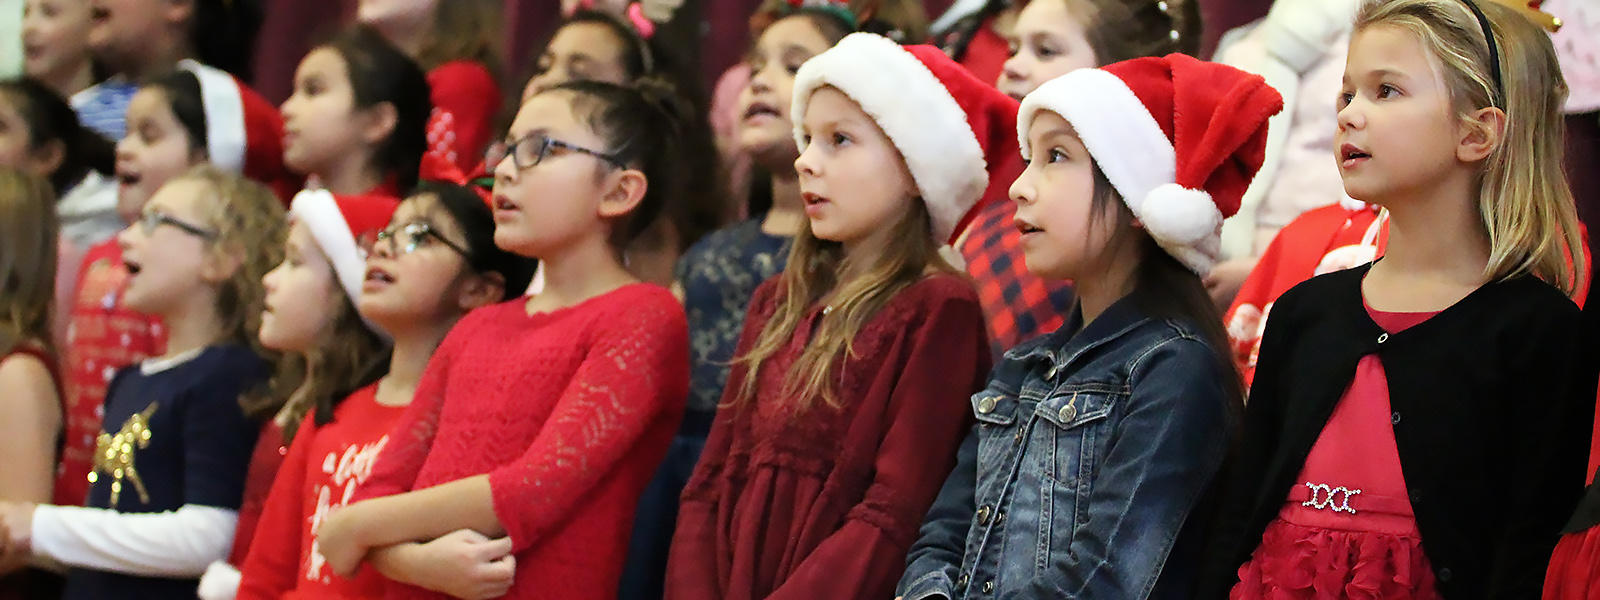 John Mills Choir members perform at the 2018 Winter Concert.